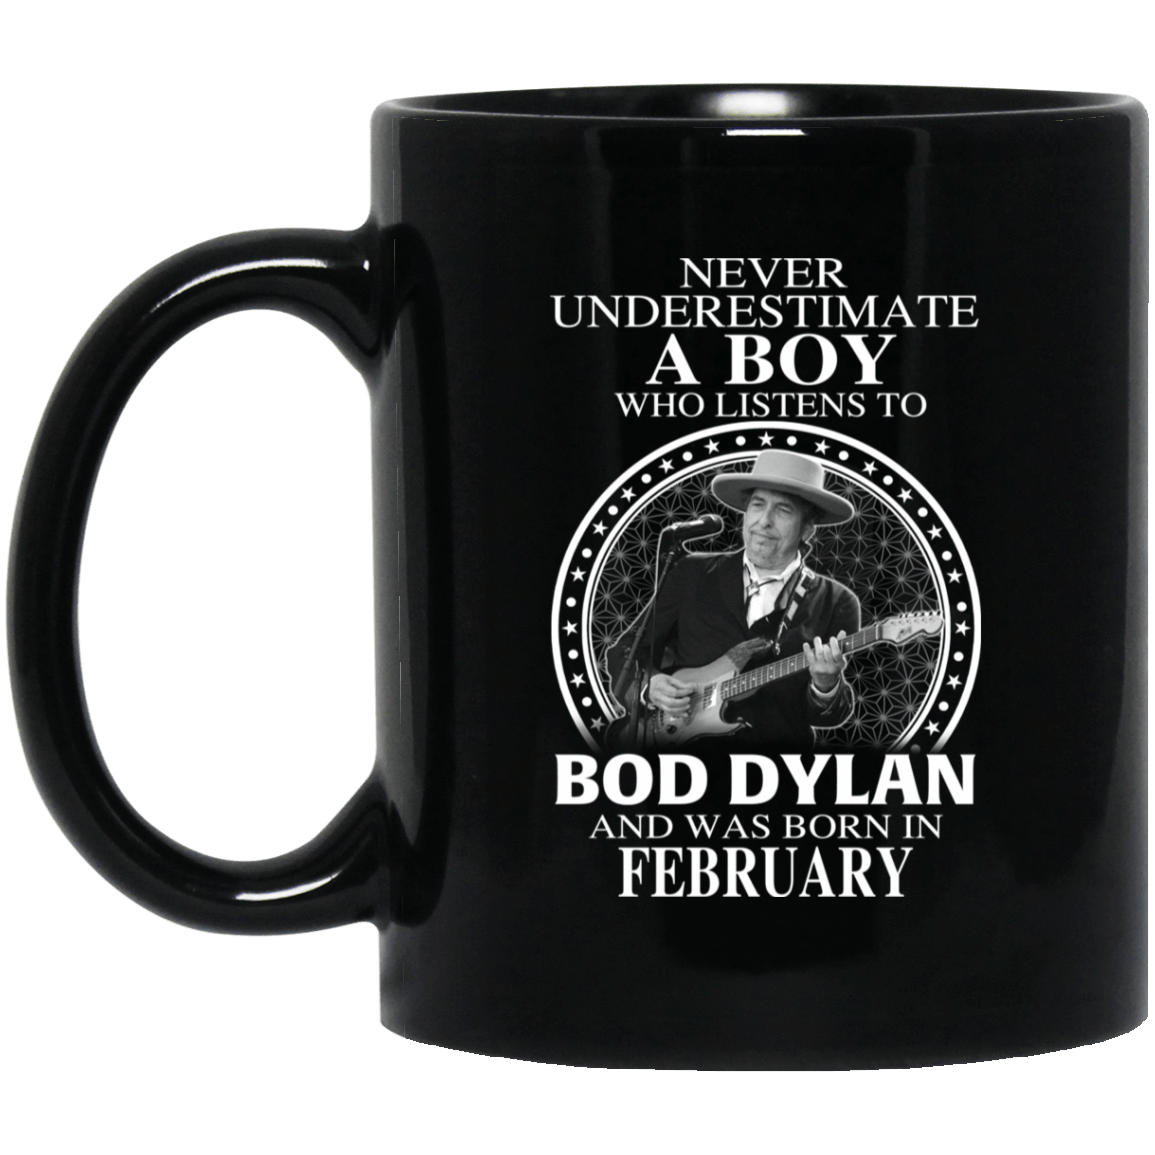 A Boy Who Listens To Bob Dylan And Was Born In February Mug 1065-10181-76154926-49307 - Tee Ript